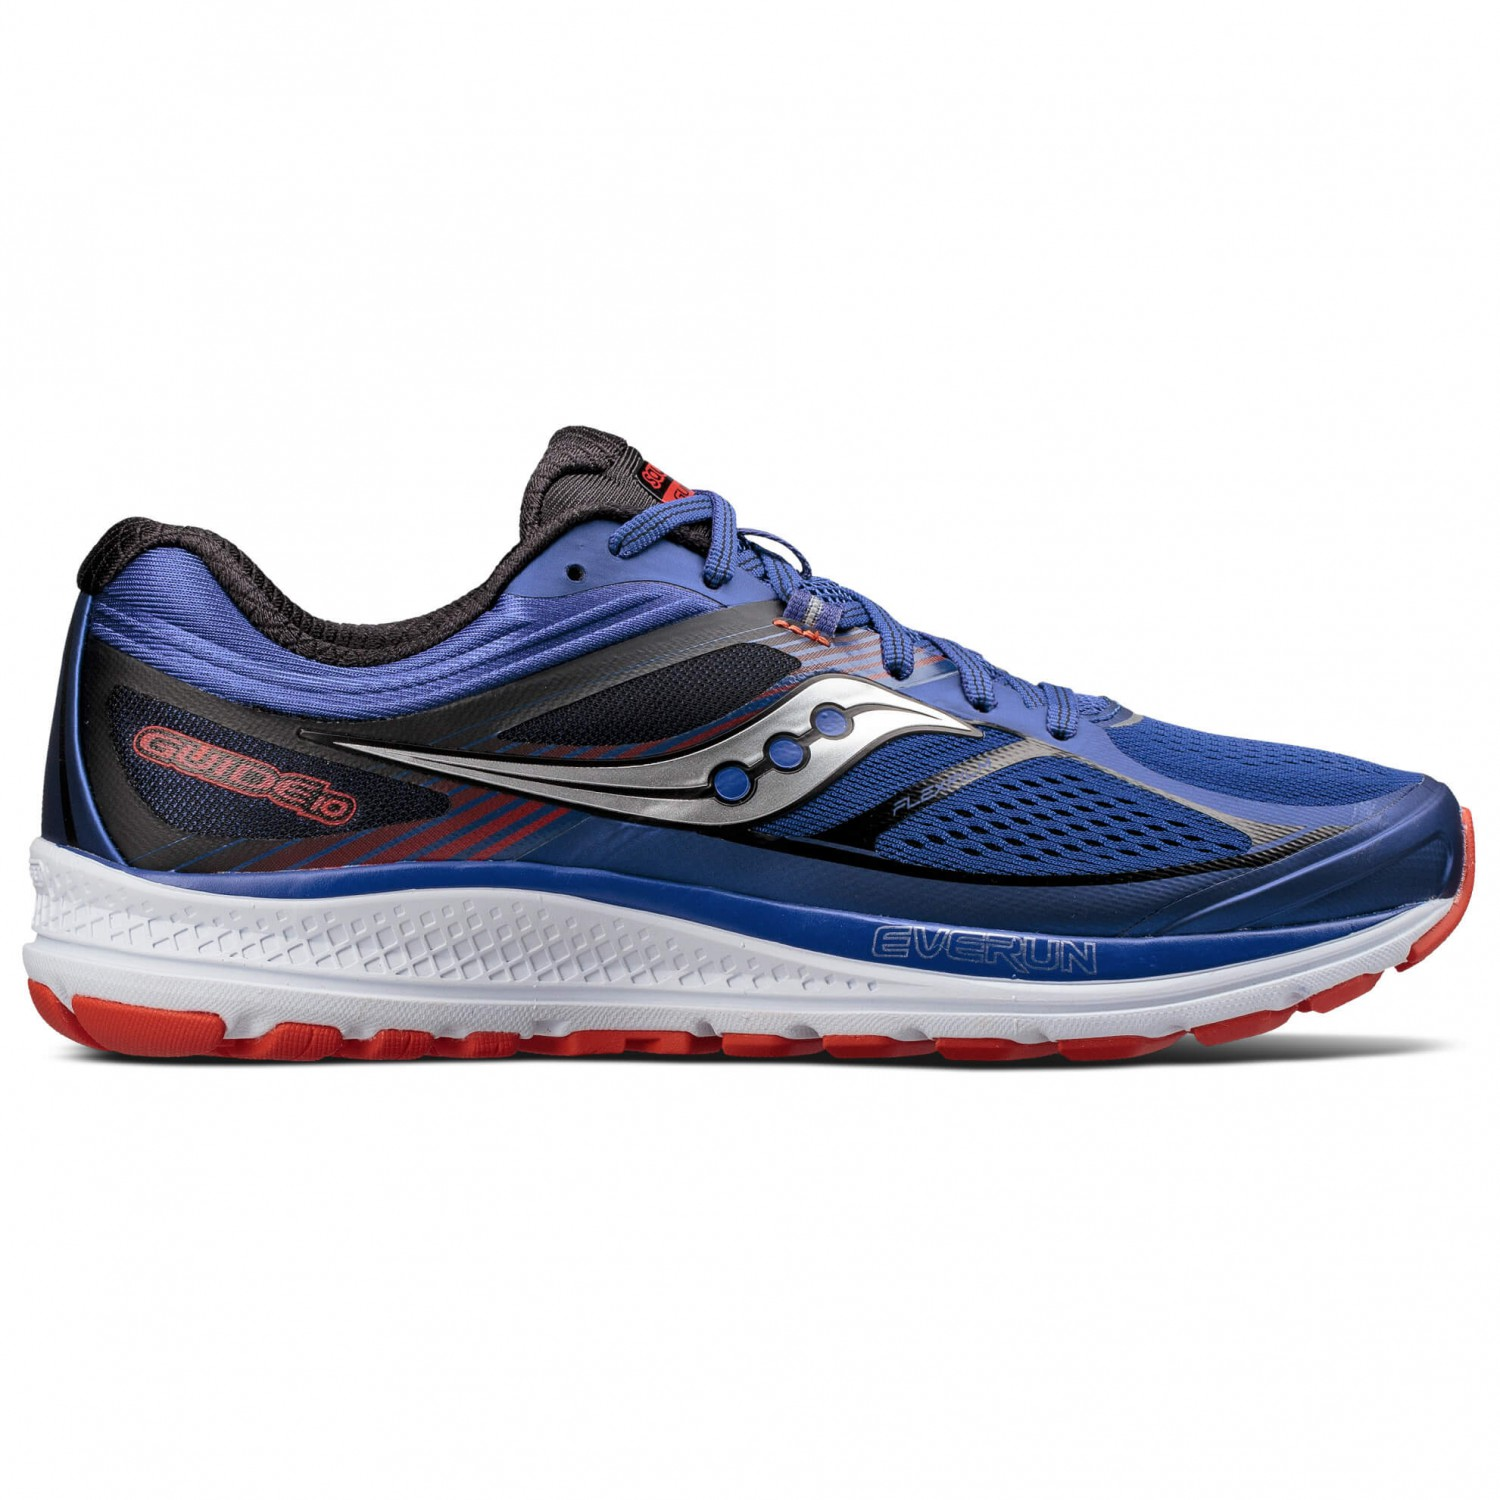 Saucony Guide 10 - Running Shoes Men's | Free UK Delivery